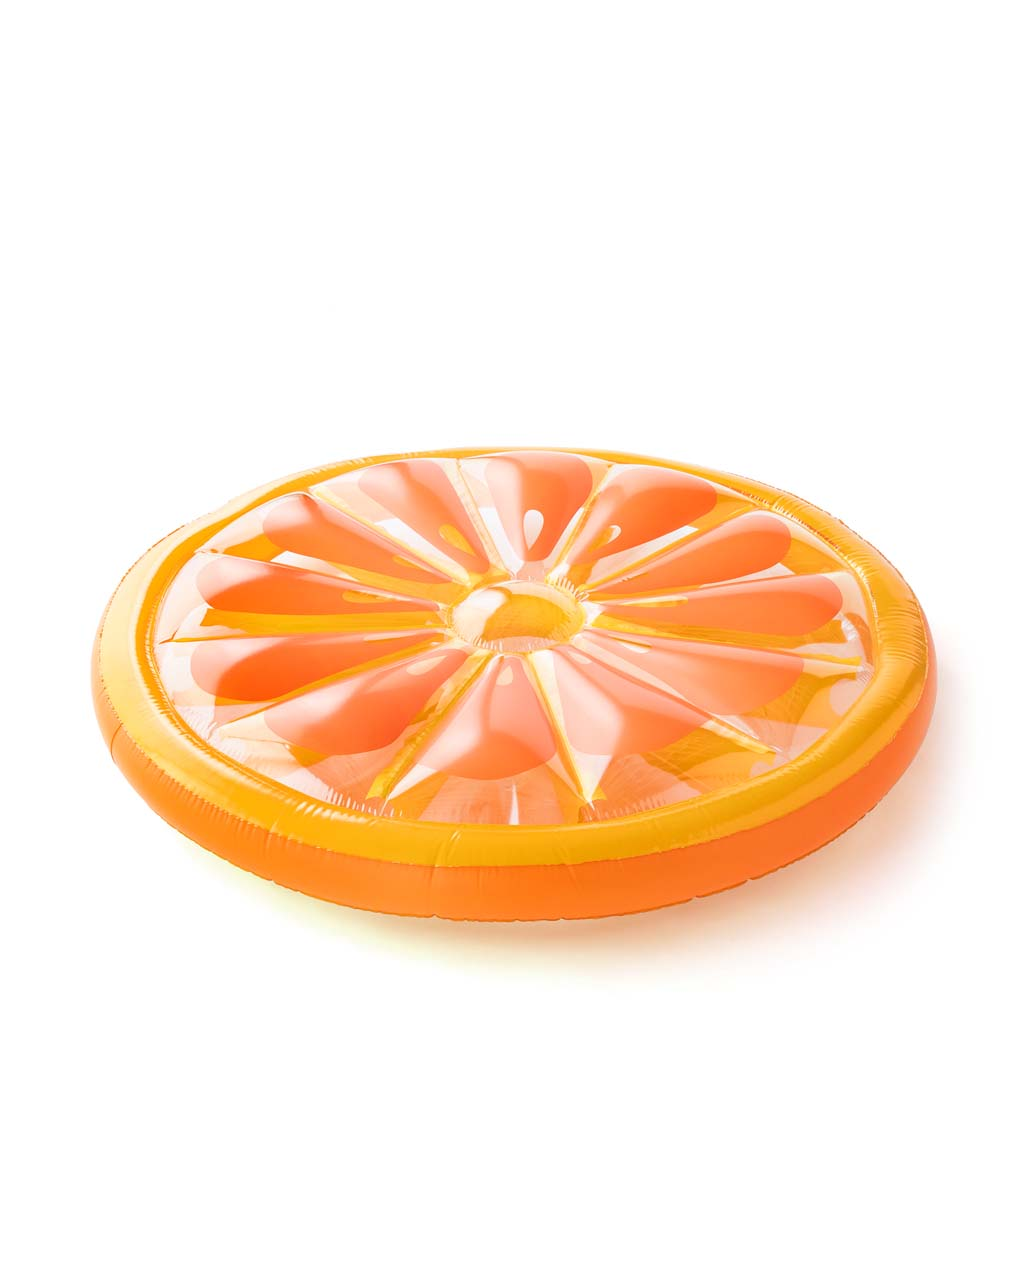 This Float On Giant Inflatable comes in a bright orange slice design.